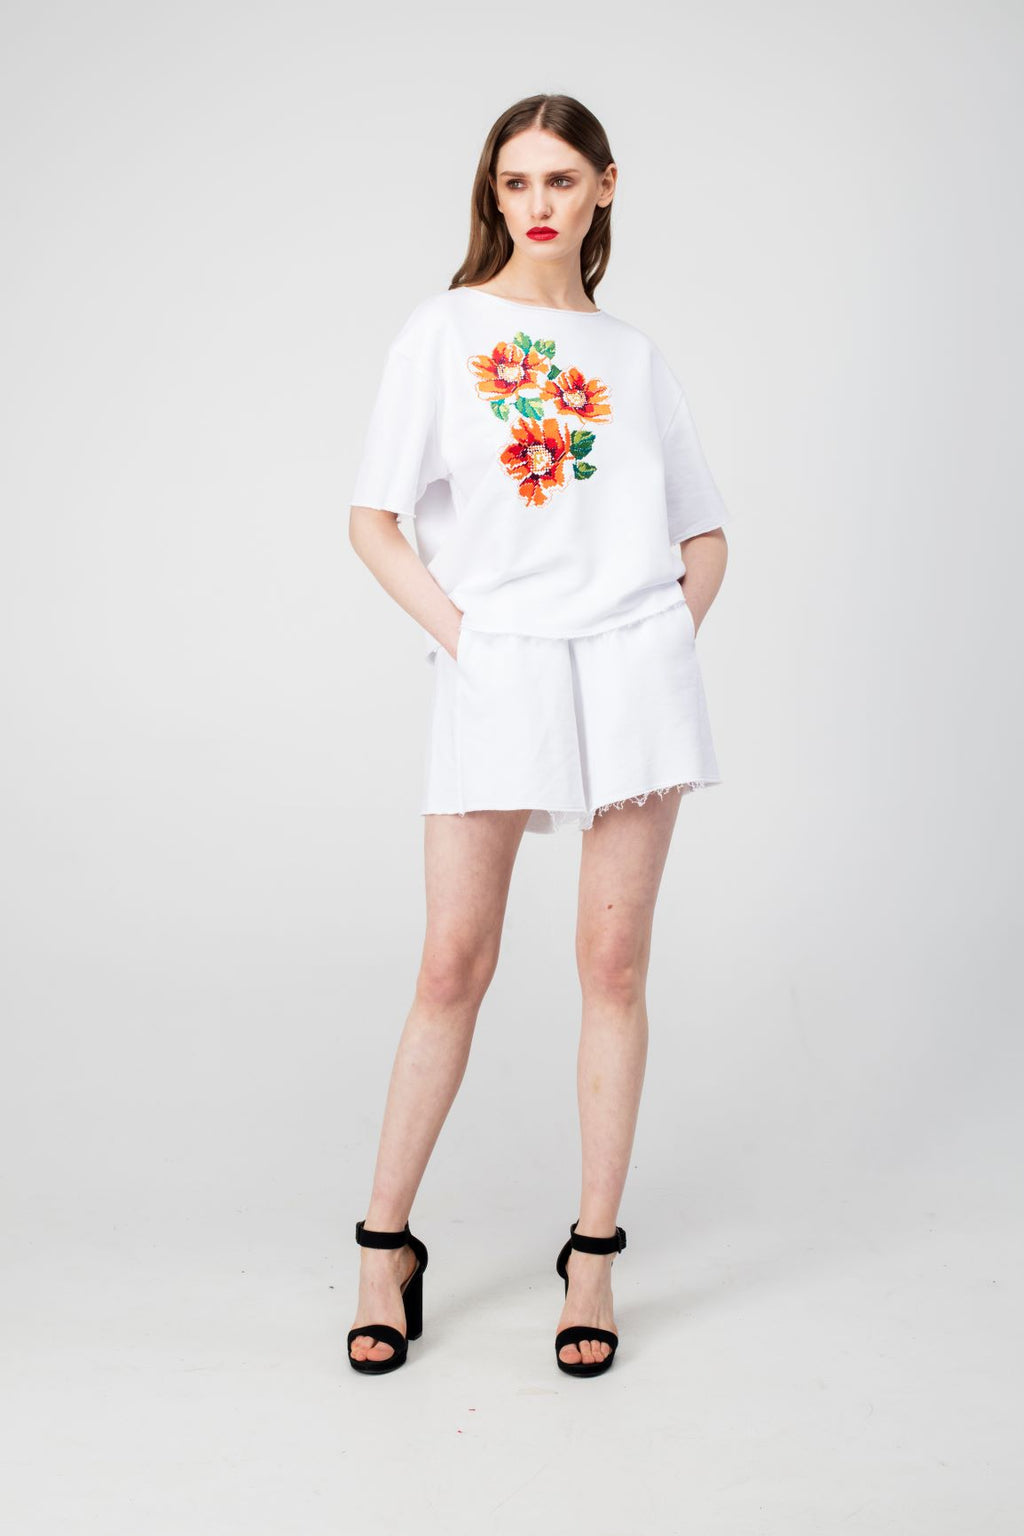 White Embroidered Poppy Flower Girls Set - LAZY FRANCIS - Shop in store at 406 Kings Road, Chelsea, London or shop online at www.lazyfrancis.com